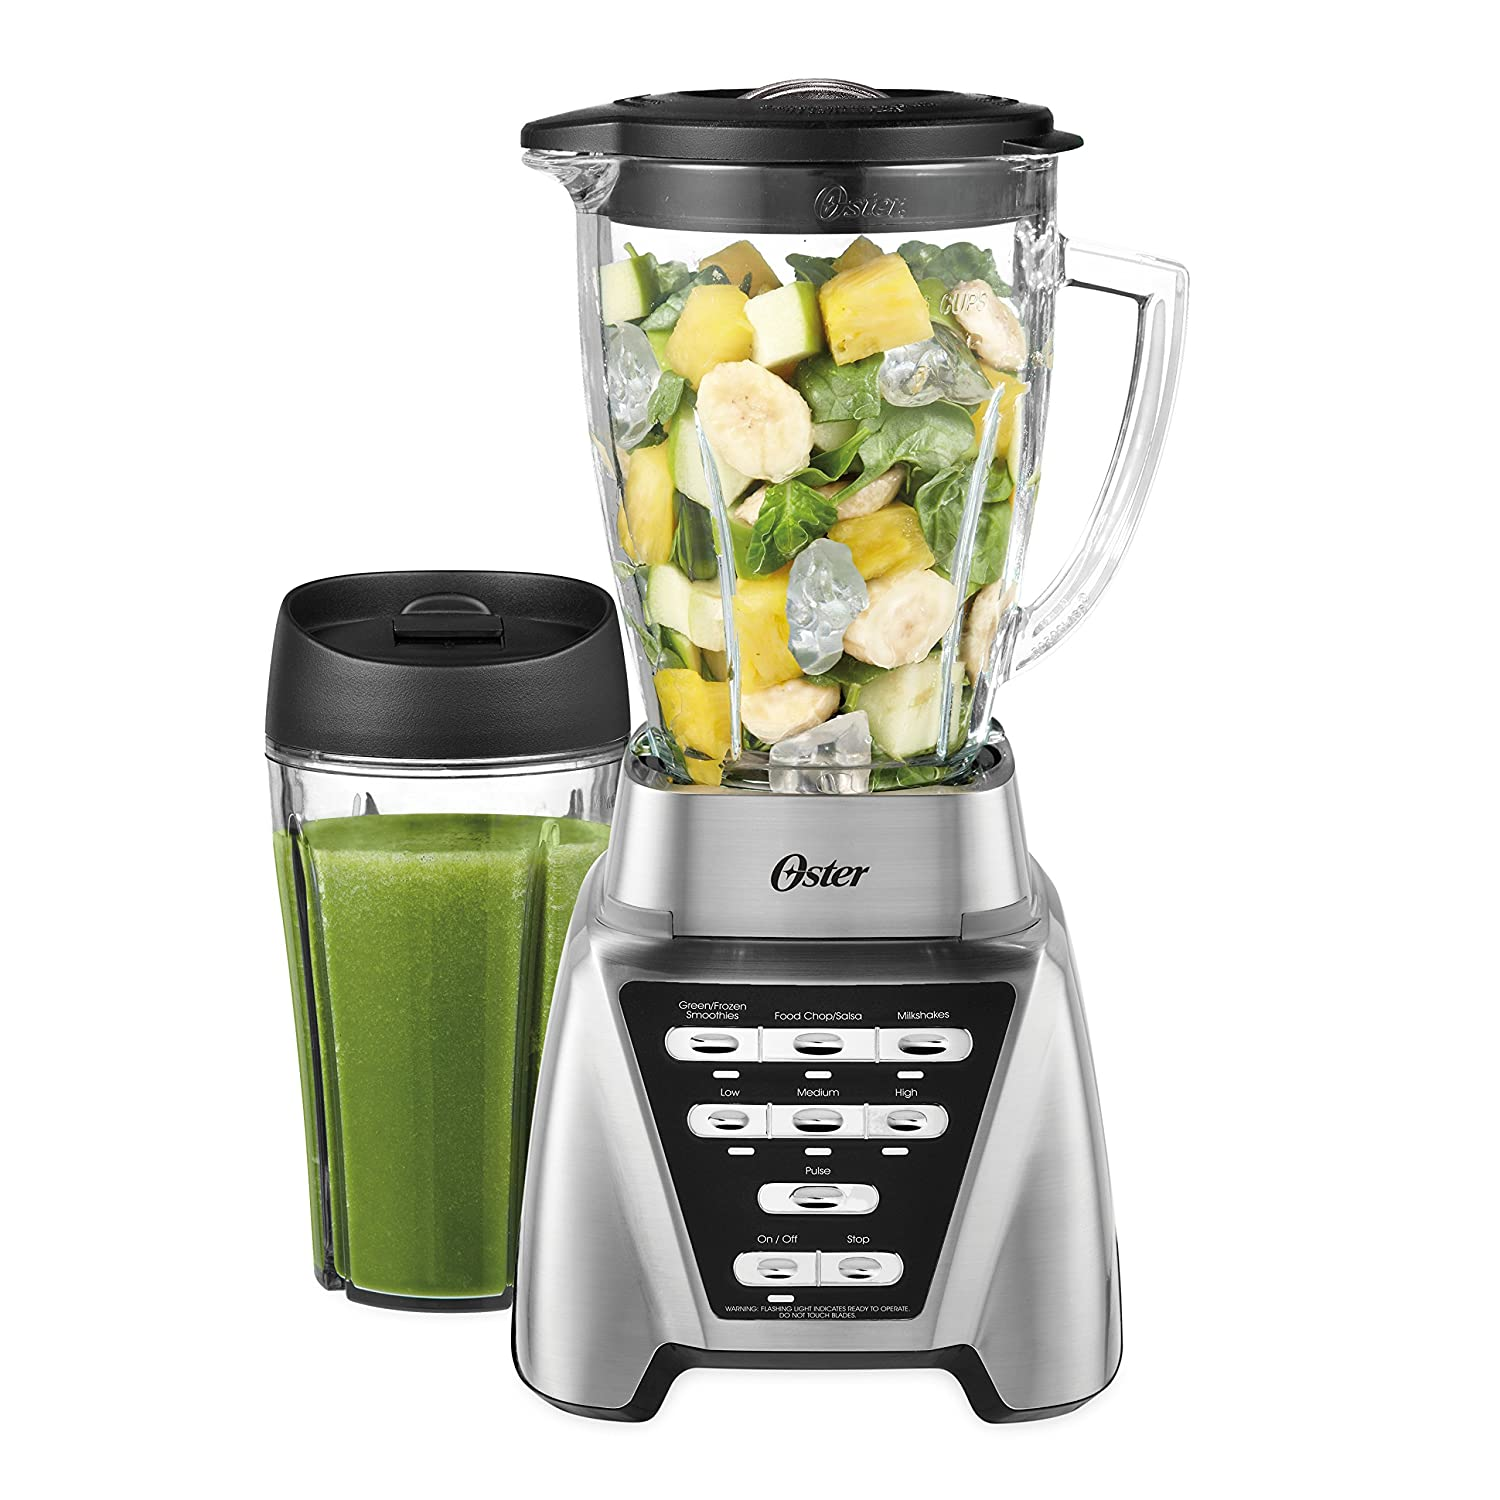 Oster Pro 1200 Blender with 24 ounce smoothie cup